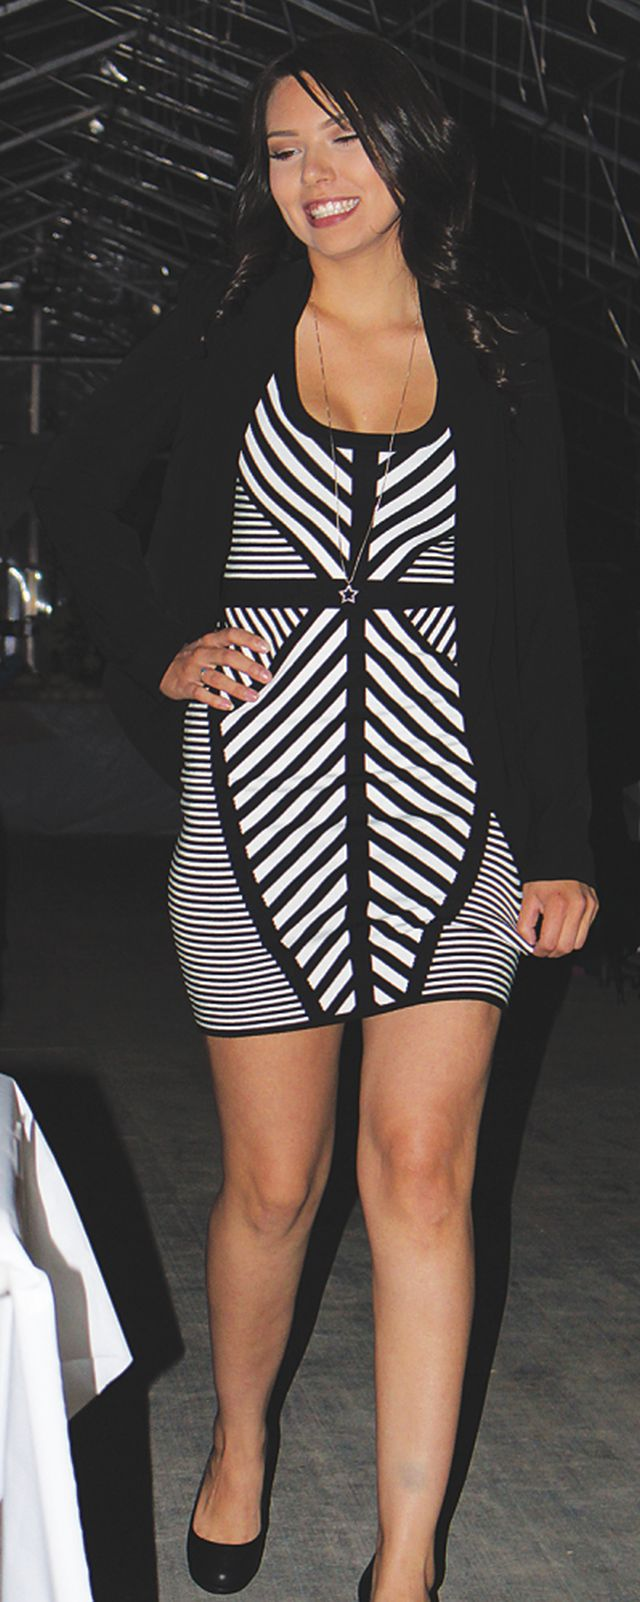 Shenay Bellrose has us seeing black and white in this figure flattering stripped dress.